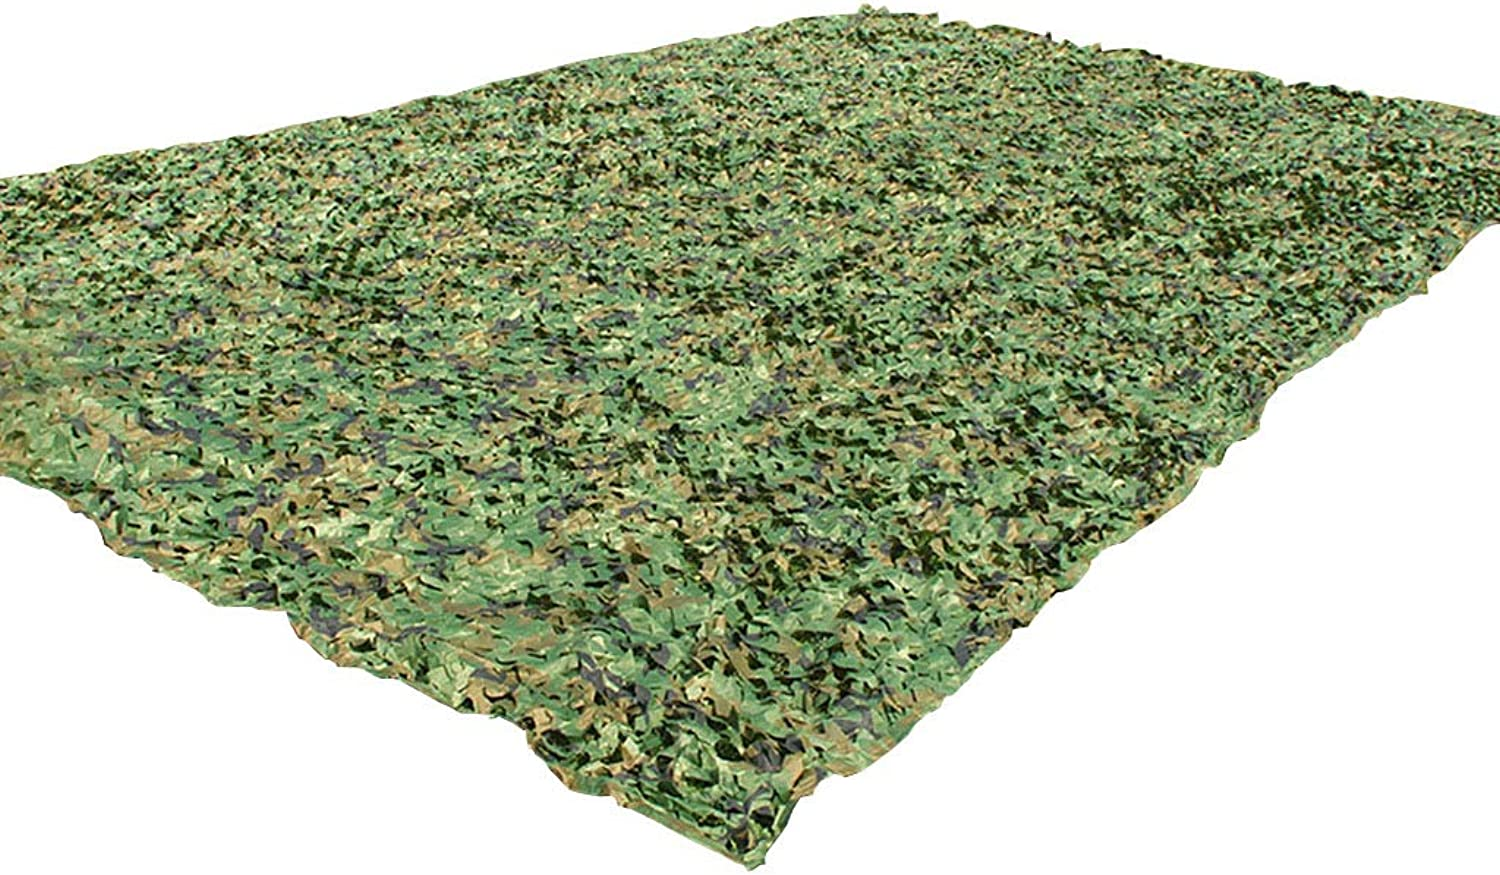 Camouflage Net Oxford Polyester Lightweight UV Resistant Army Camo Net Camo Netting for Sunshade Decoration Hunting Blind Shooting Camping Photography Jungle-Green